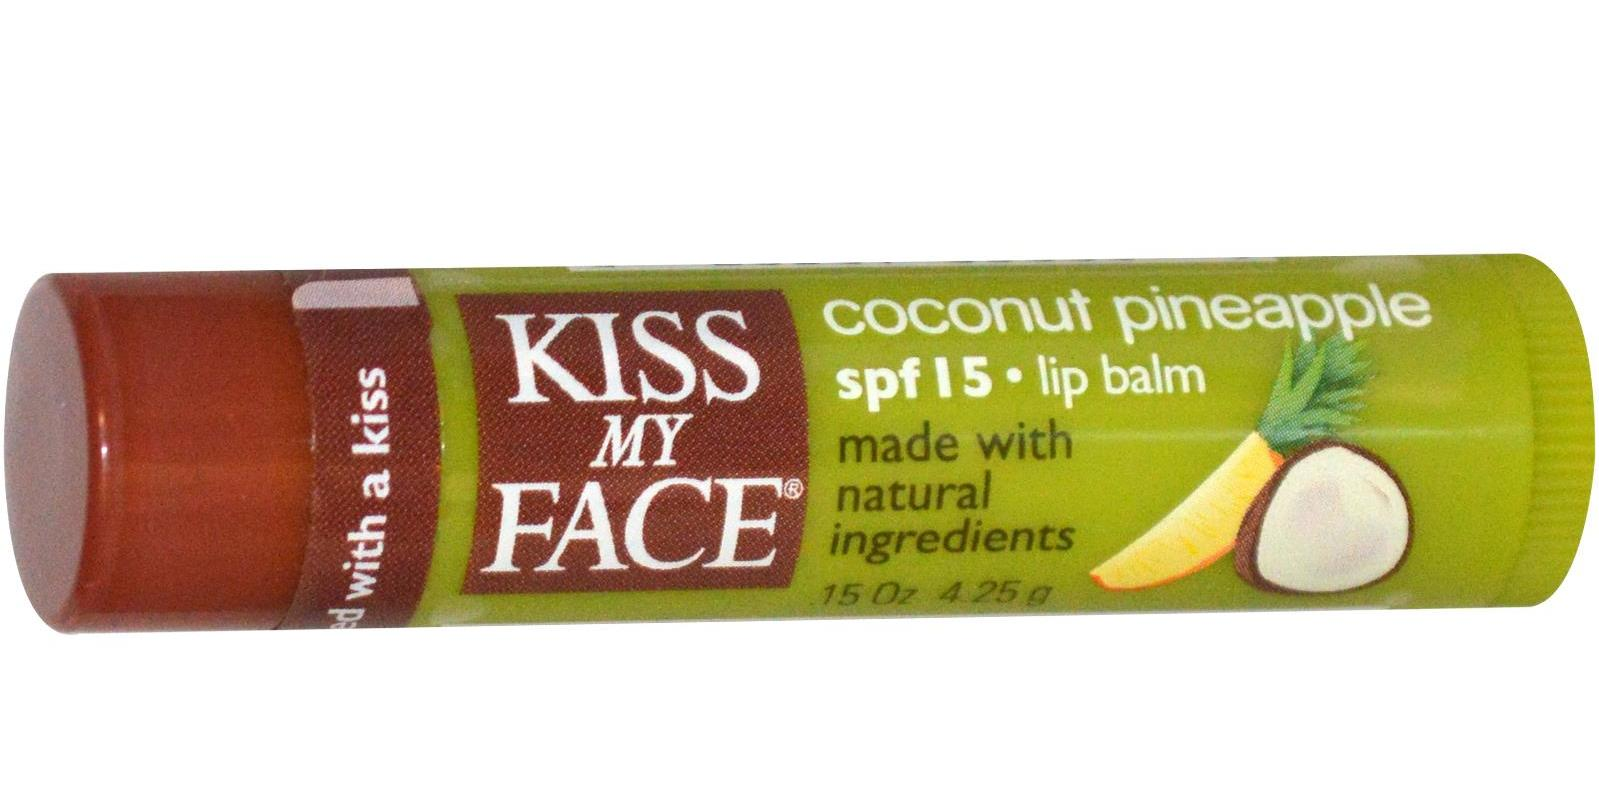 kiss my face coconut pineapple lip balm